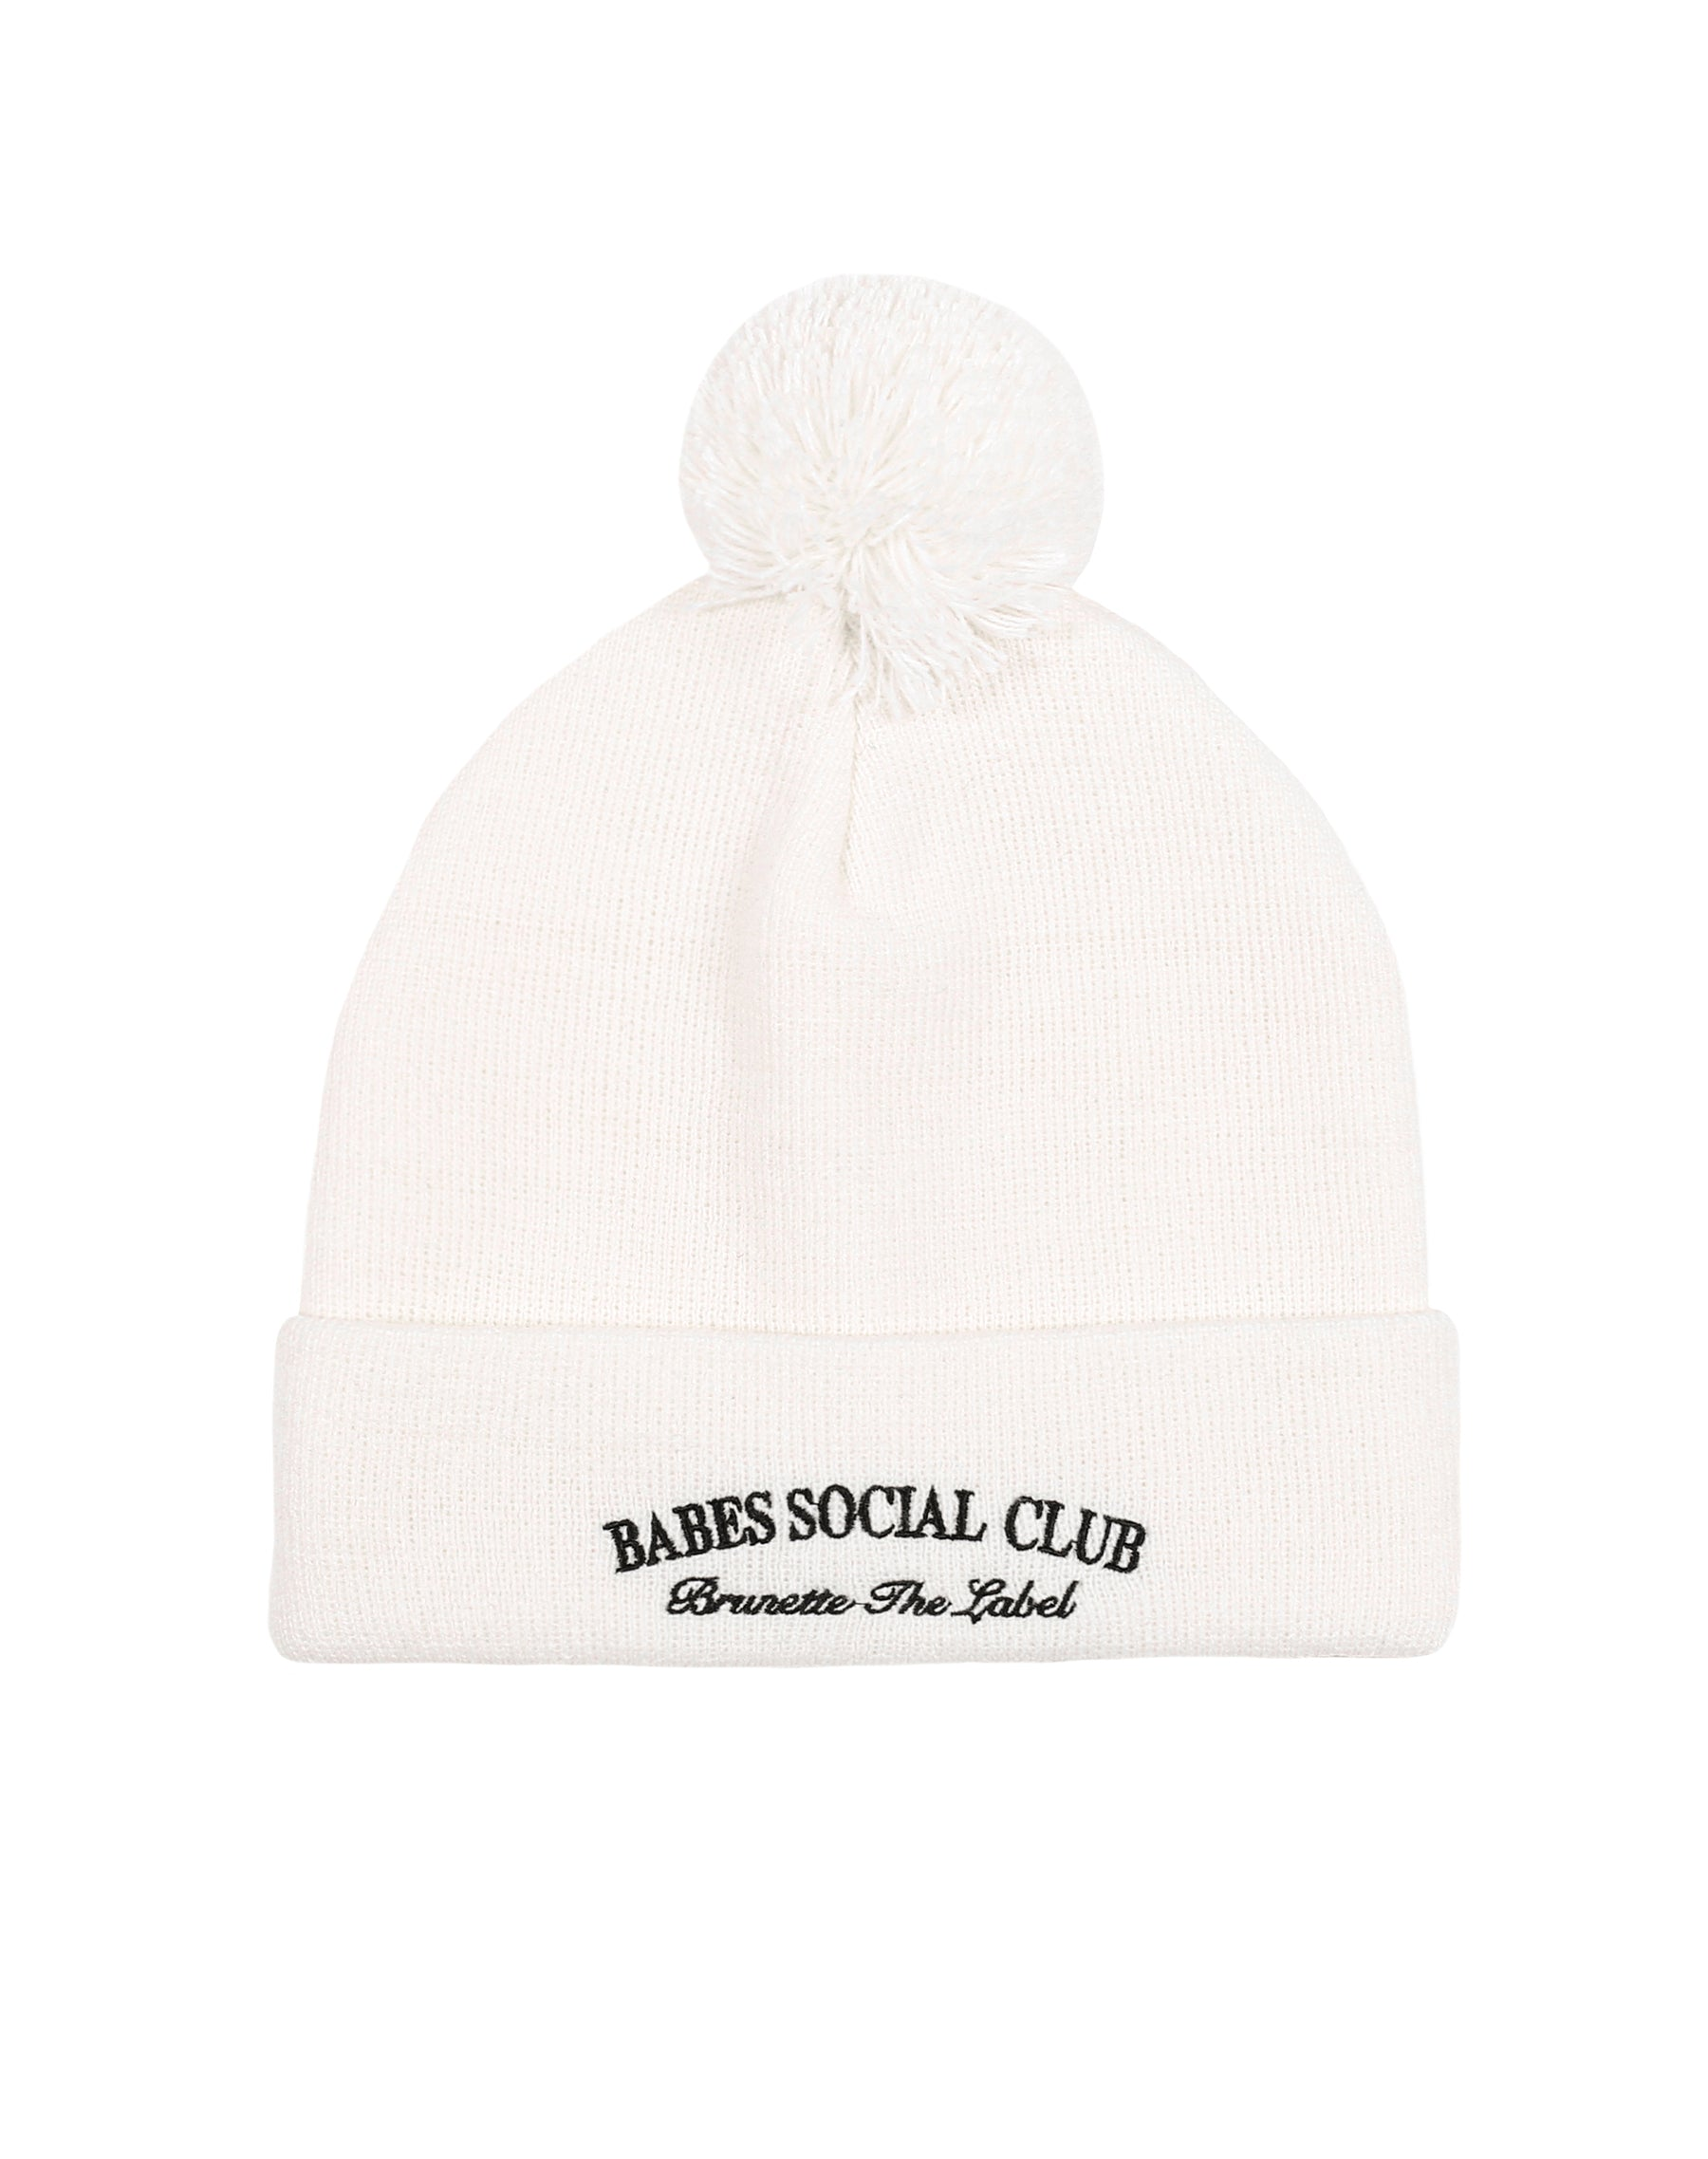 This is a photo of the Babes Social Club Toque in Cream by Brunette the Label.